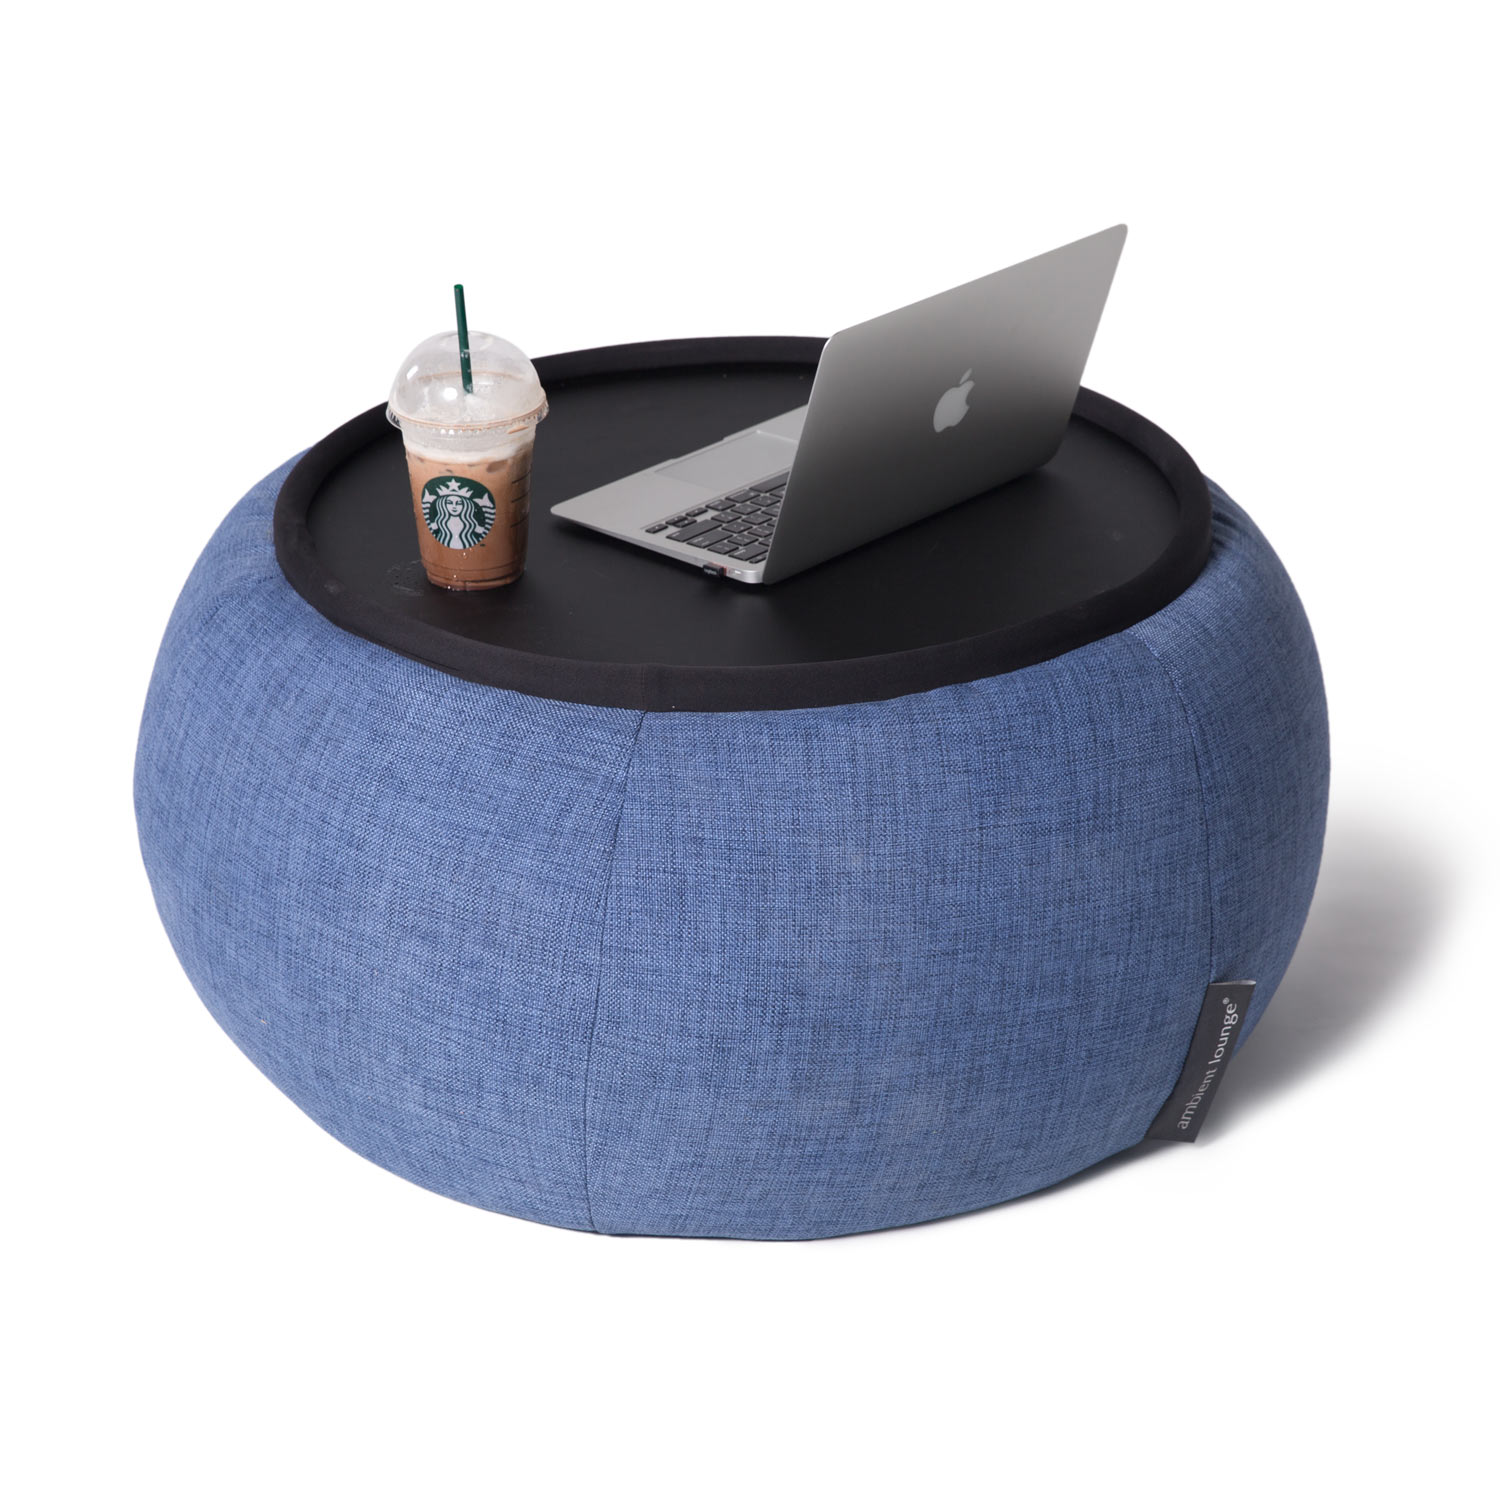 Indoor Blue Bean Bag Table Versa Table Blue Jazz